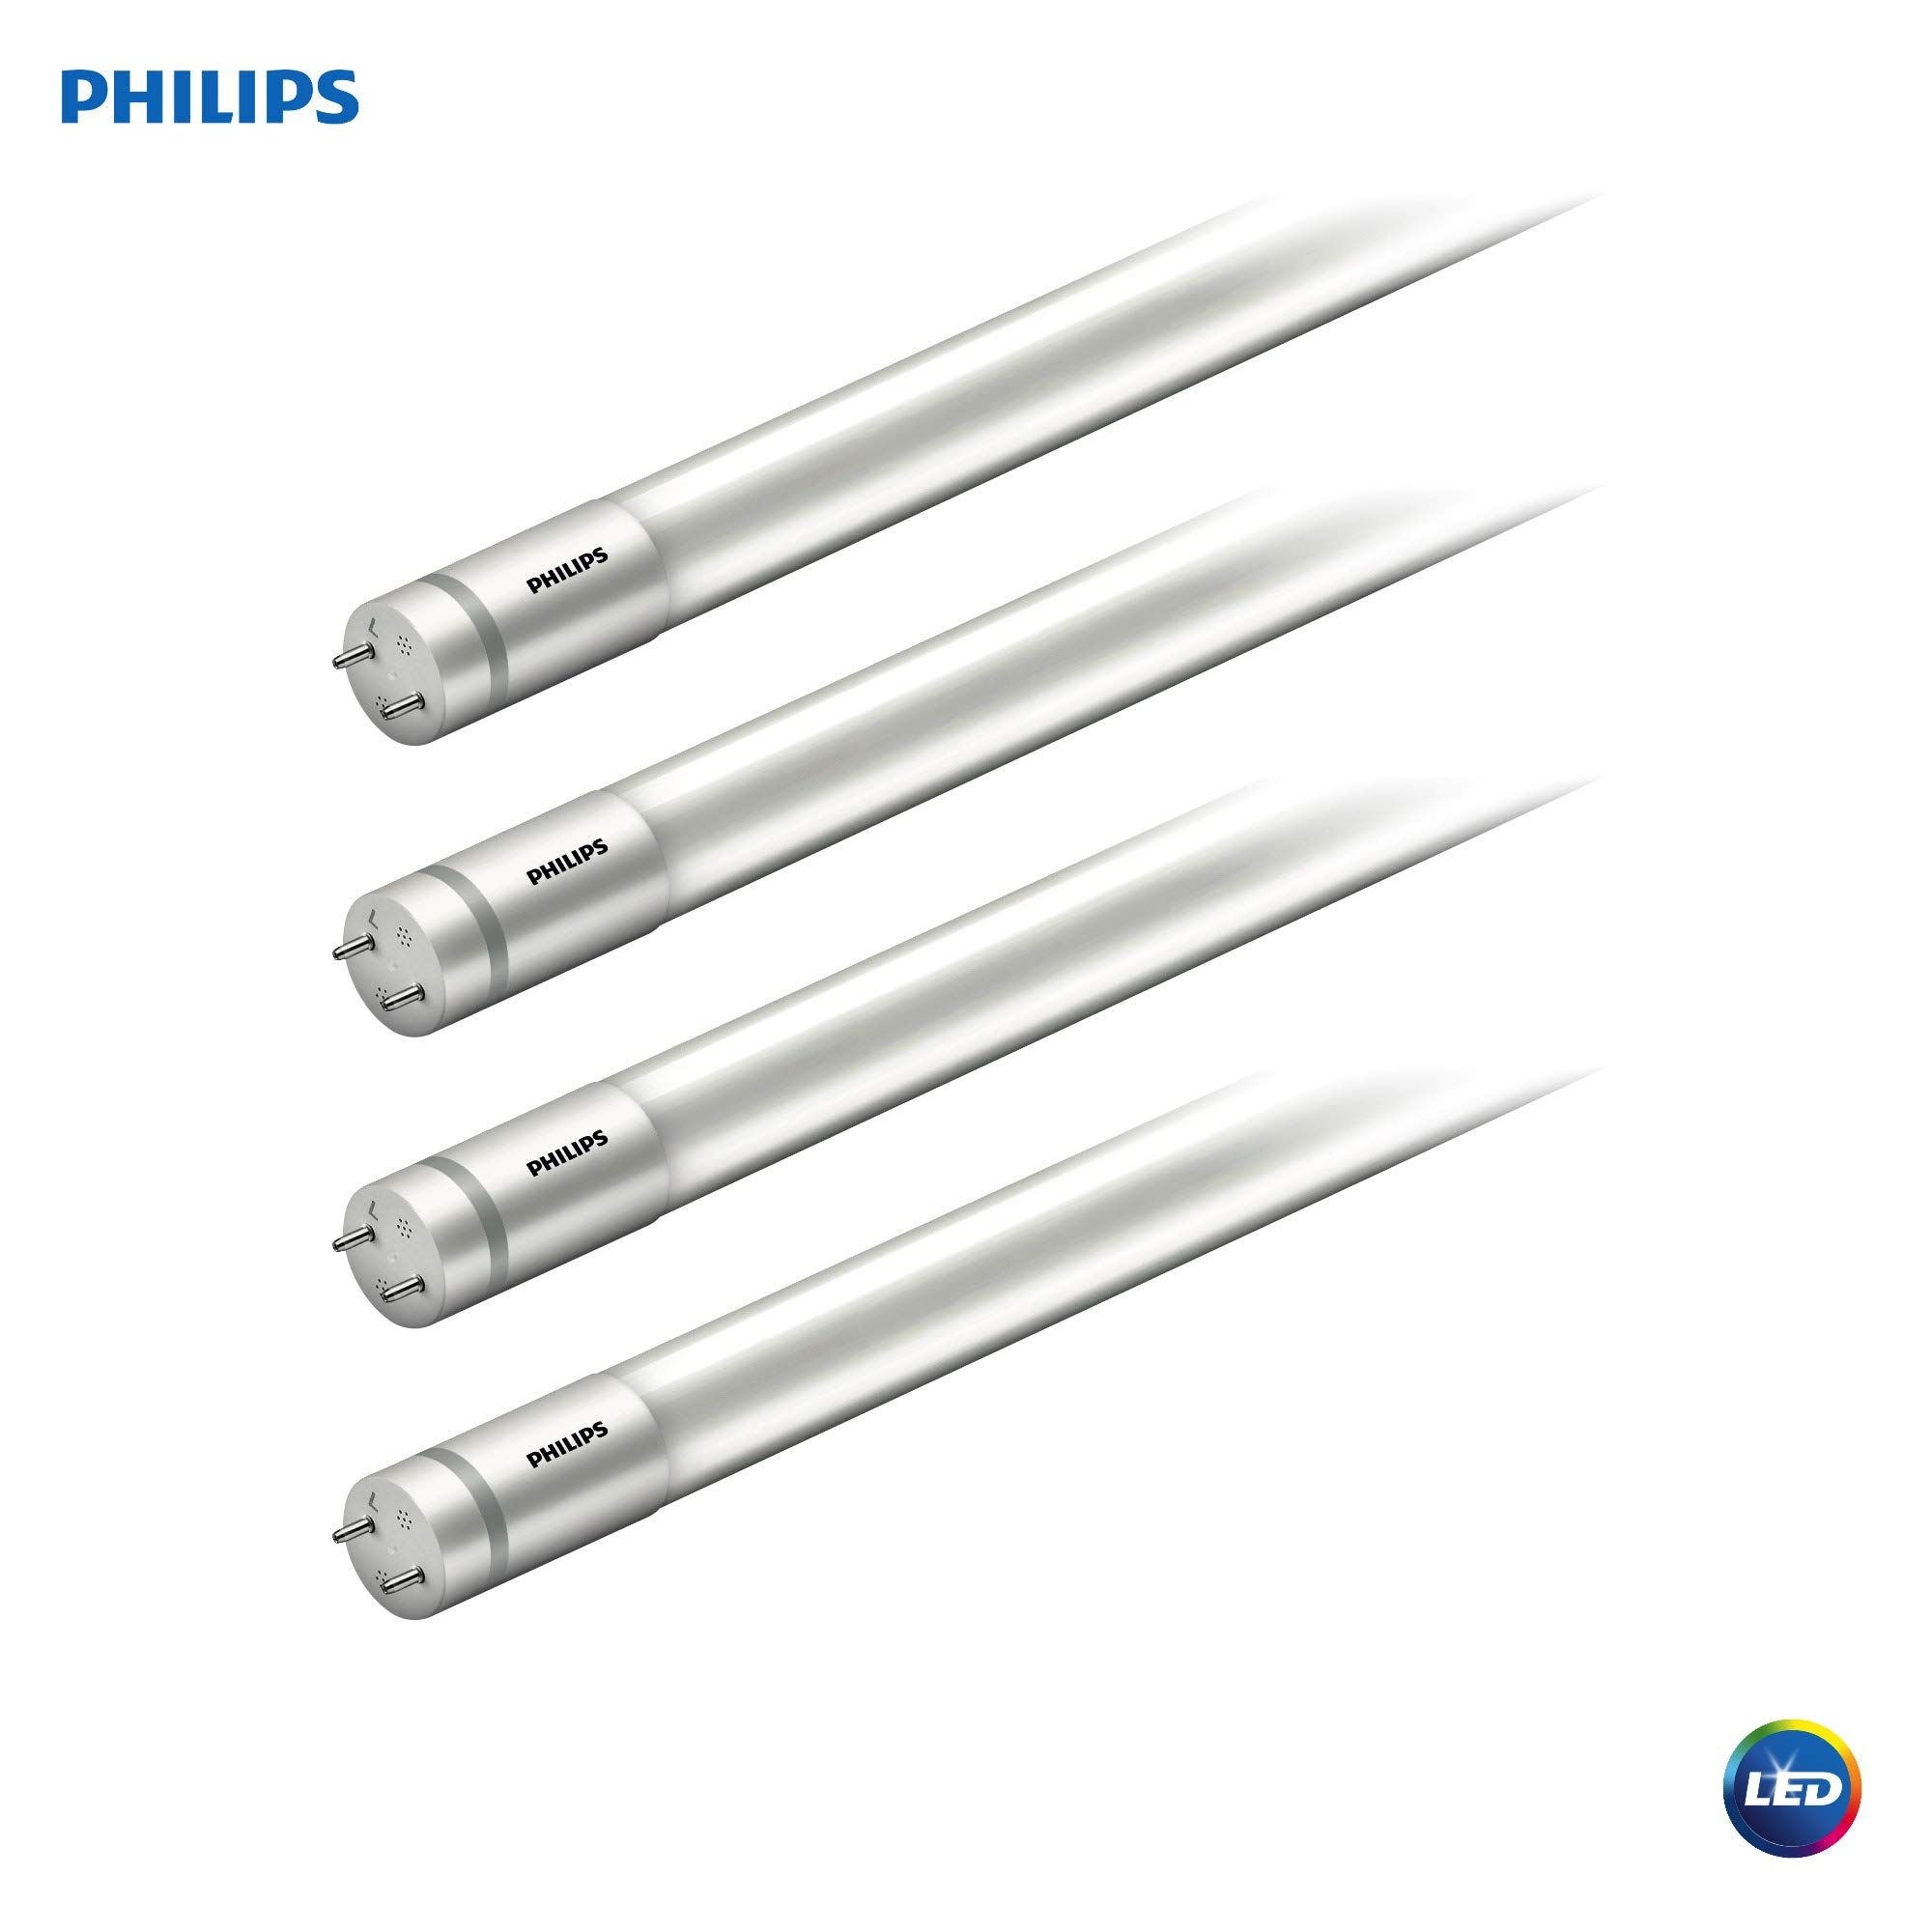 Philips LED MainsFit Ballast Bypass 2-Foot T8 Tube Glass Light Bulb: 1100-Lumen, 4000-Kelvin, 8.5 (17-Watt Equivalent), Medium Bi-Pin G13 Base, Frosted, Cool White, 4 Pack, 544205, Piece